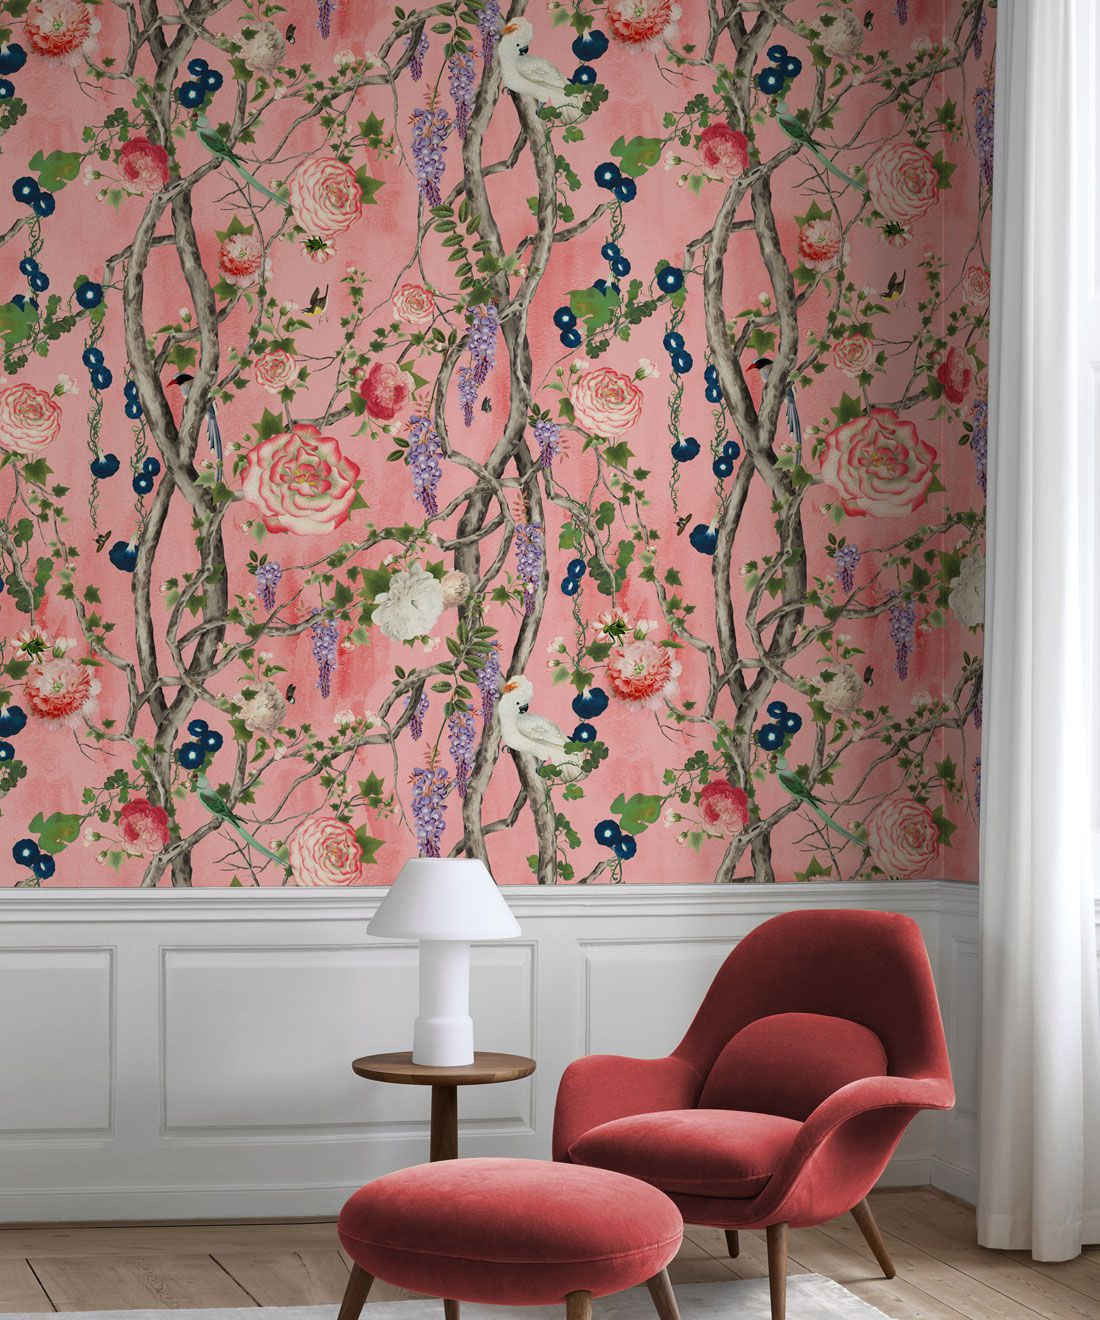 Empress Wallpaper • Romantic Wallpaper • Floral Wallpaper • Chinoiserie Wallpaper • Coral color wallpaper insitu